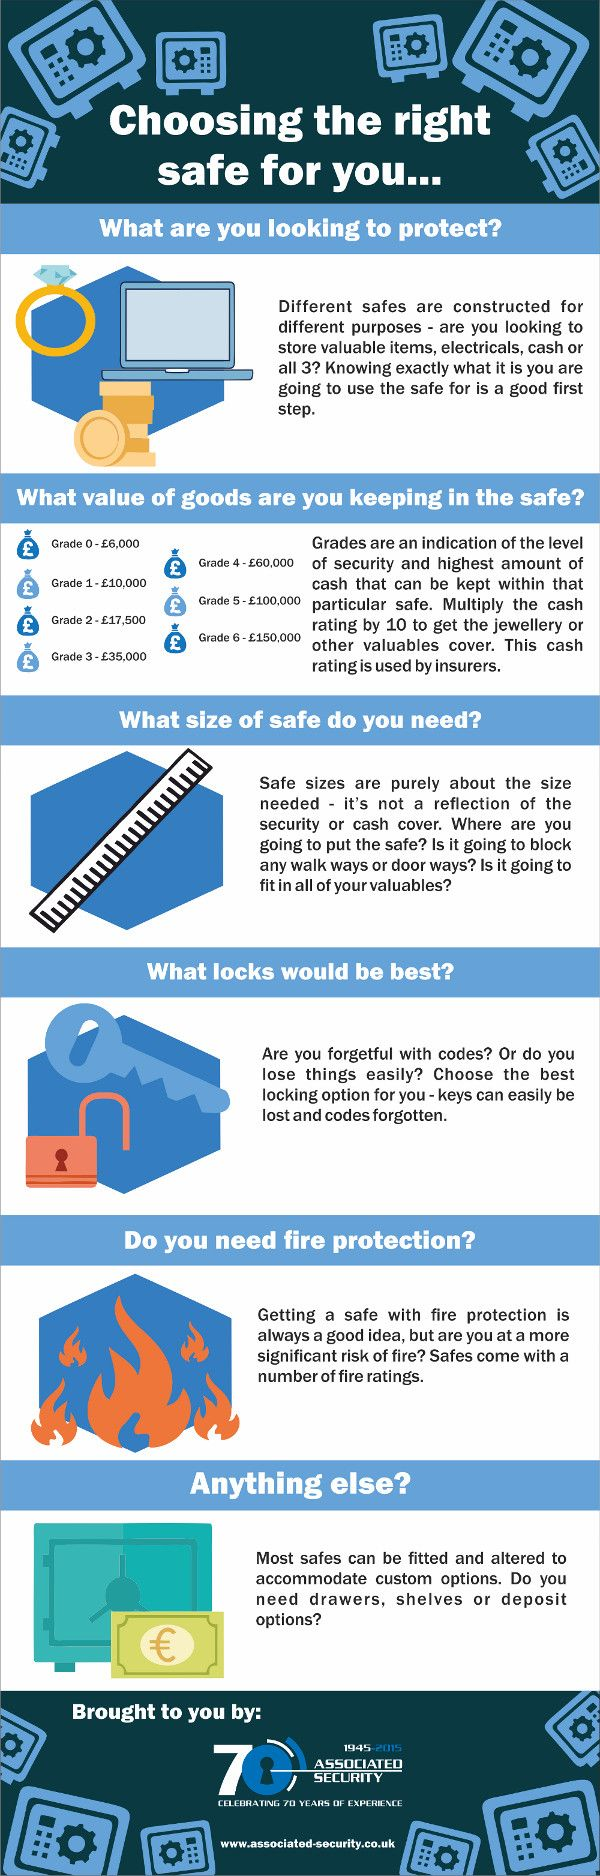 What are some things to consider when buying a home safe?